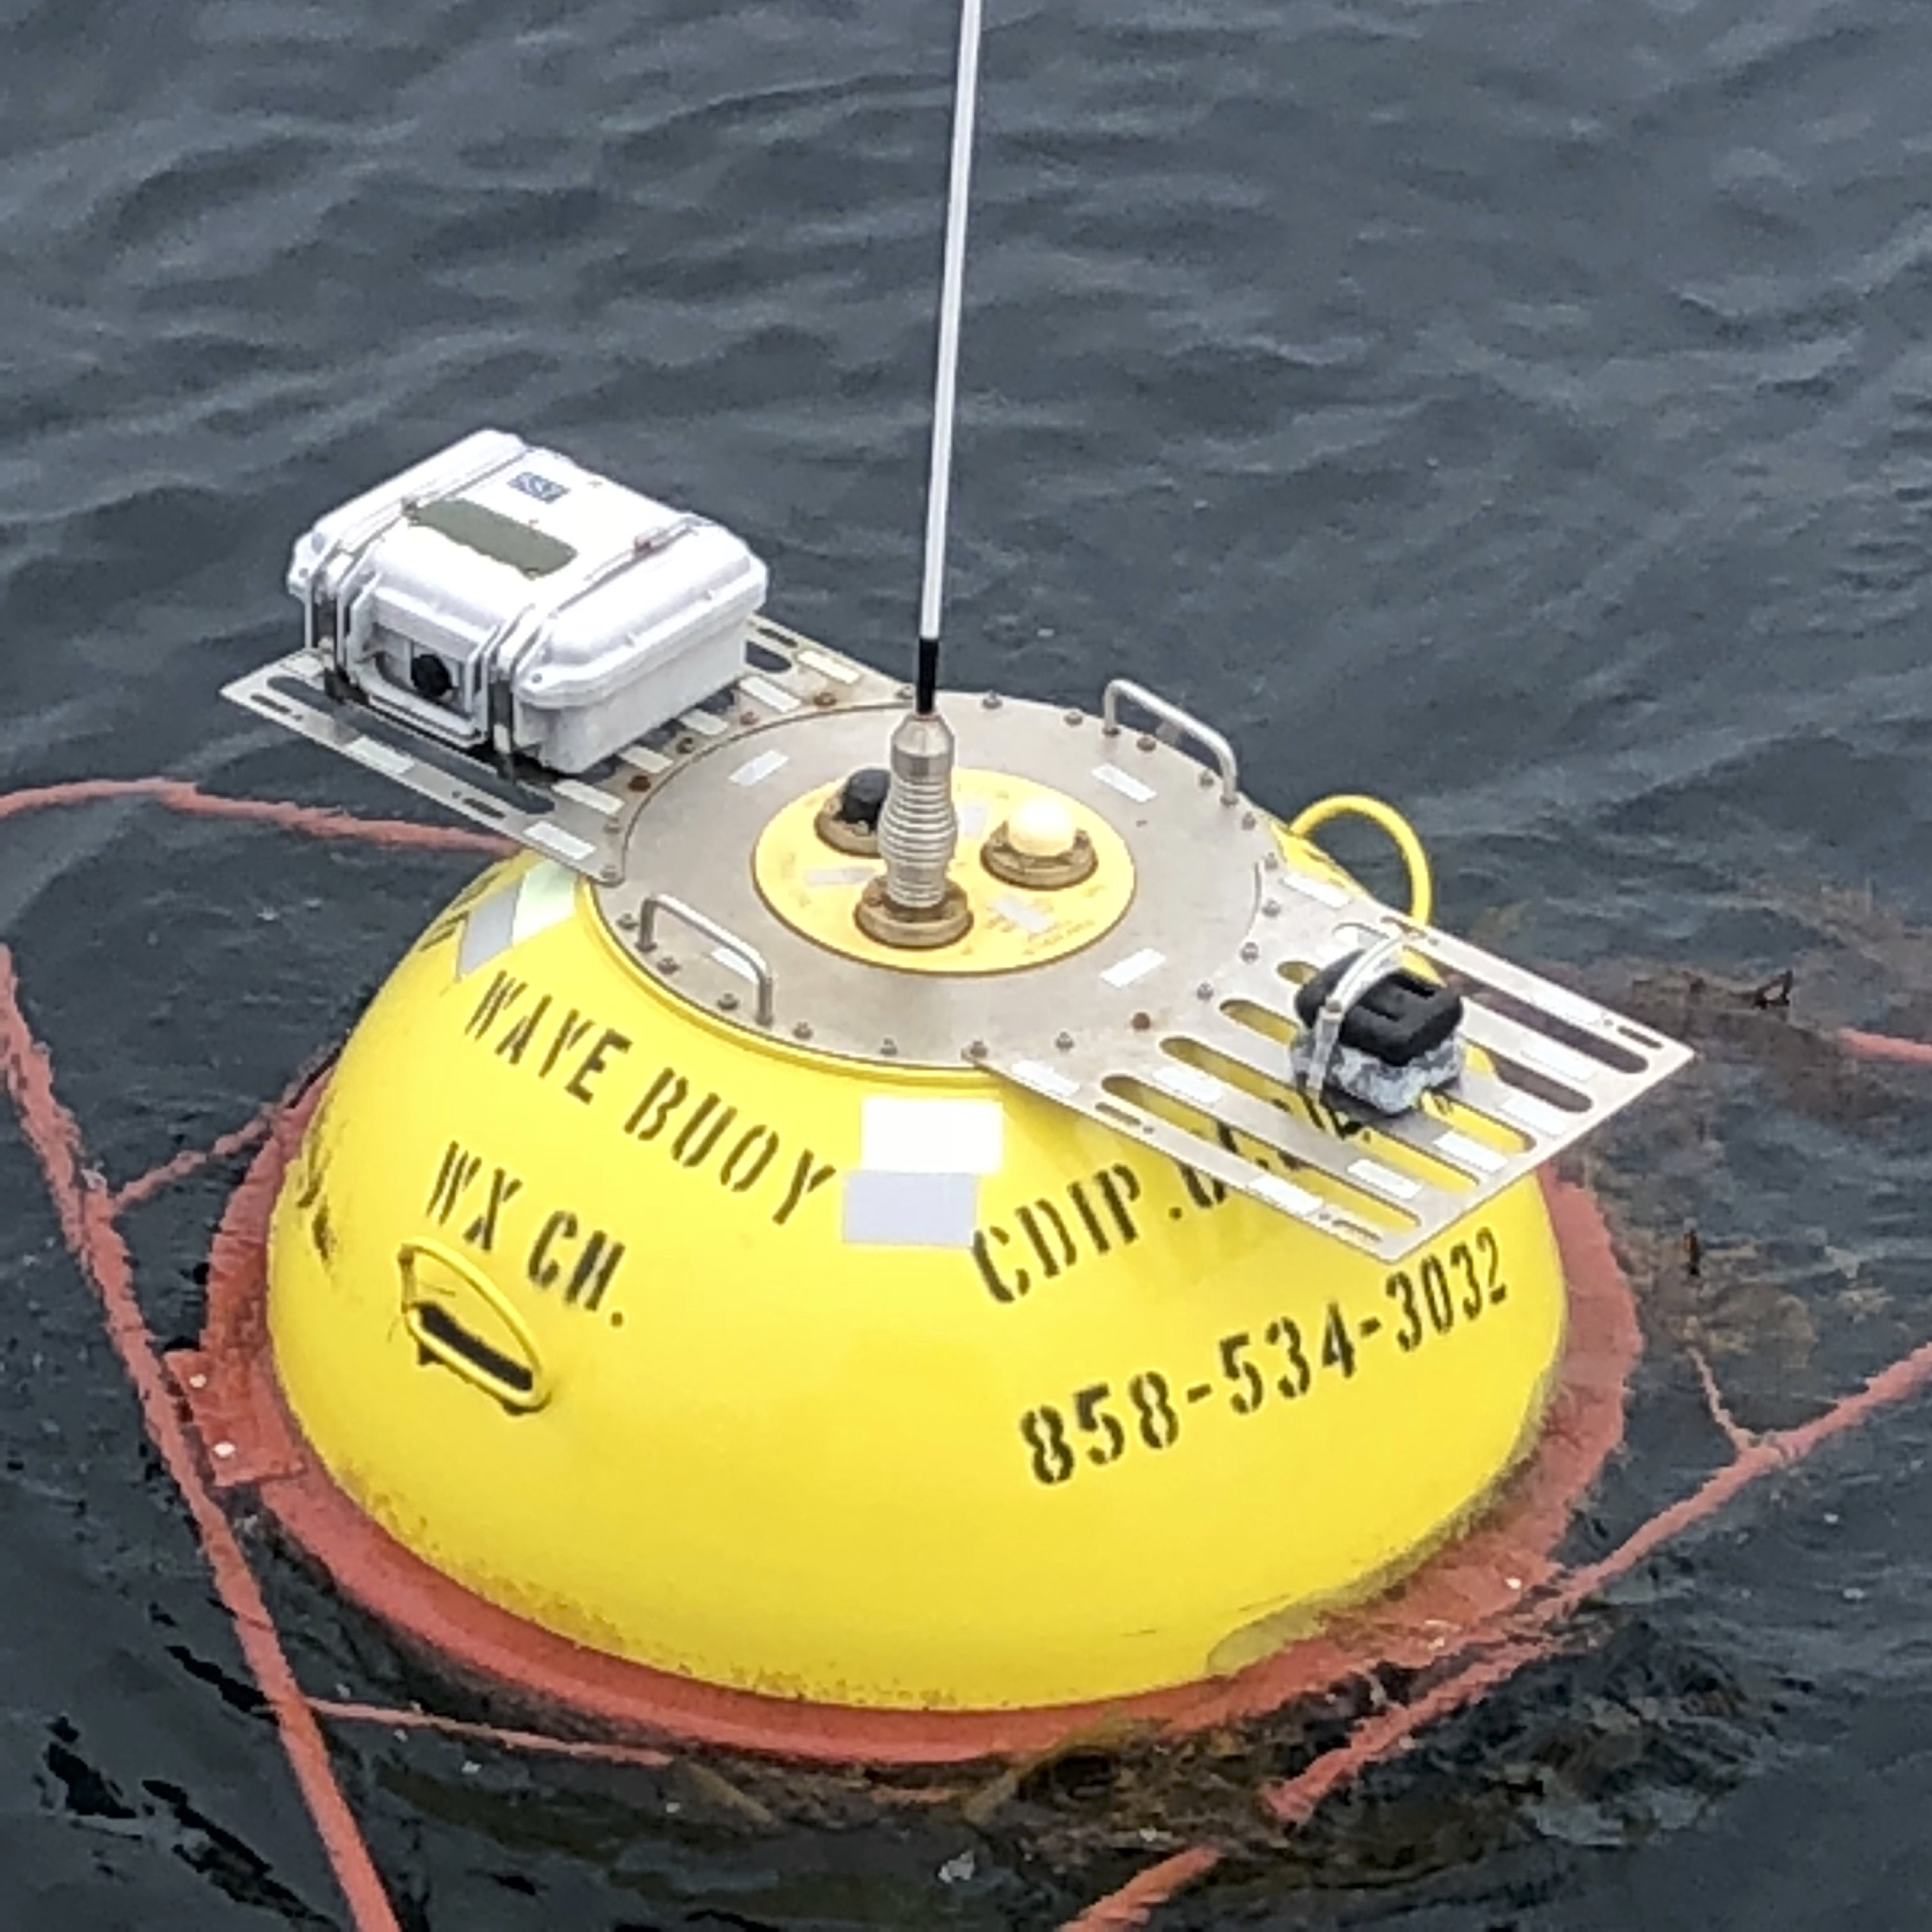 Buoy with AIS transmitter installed